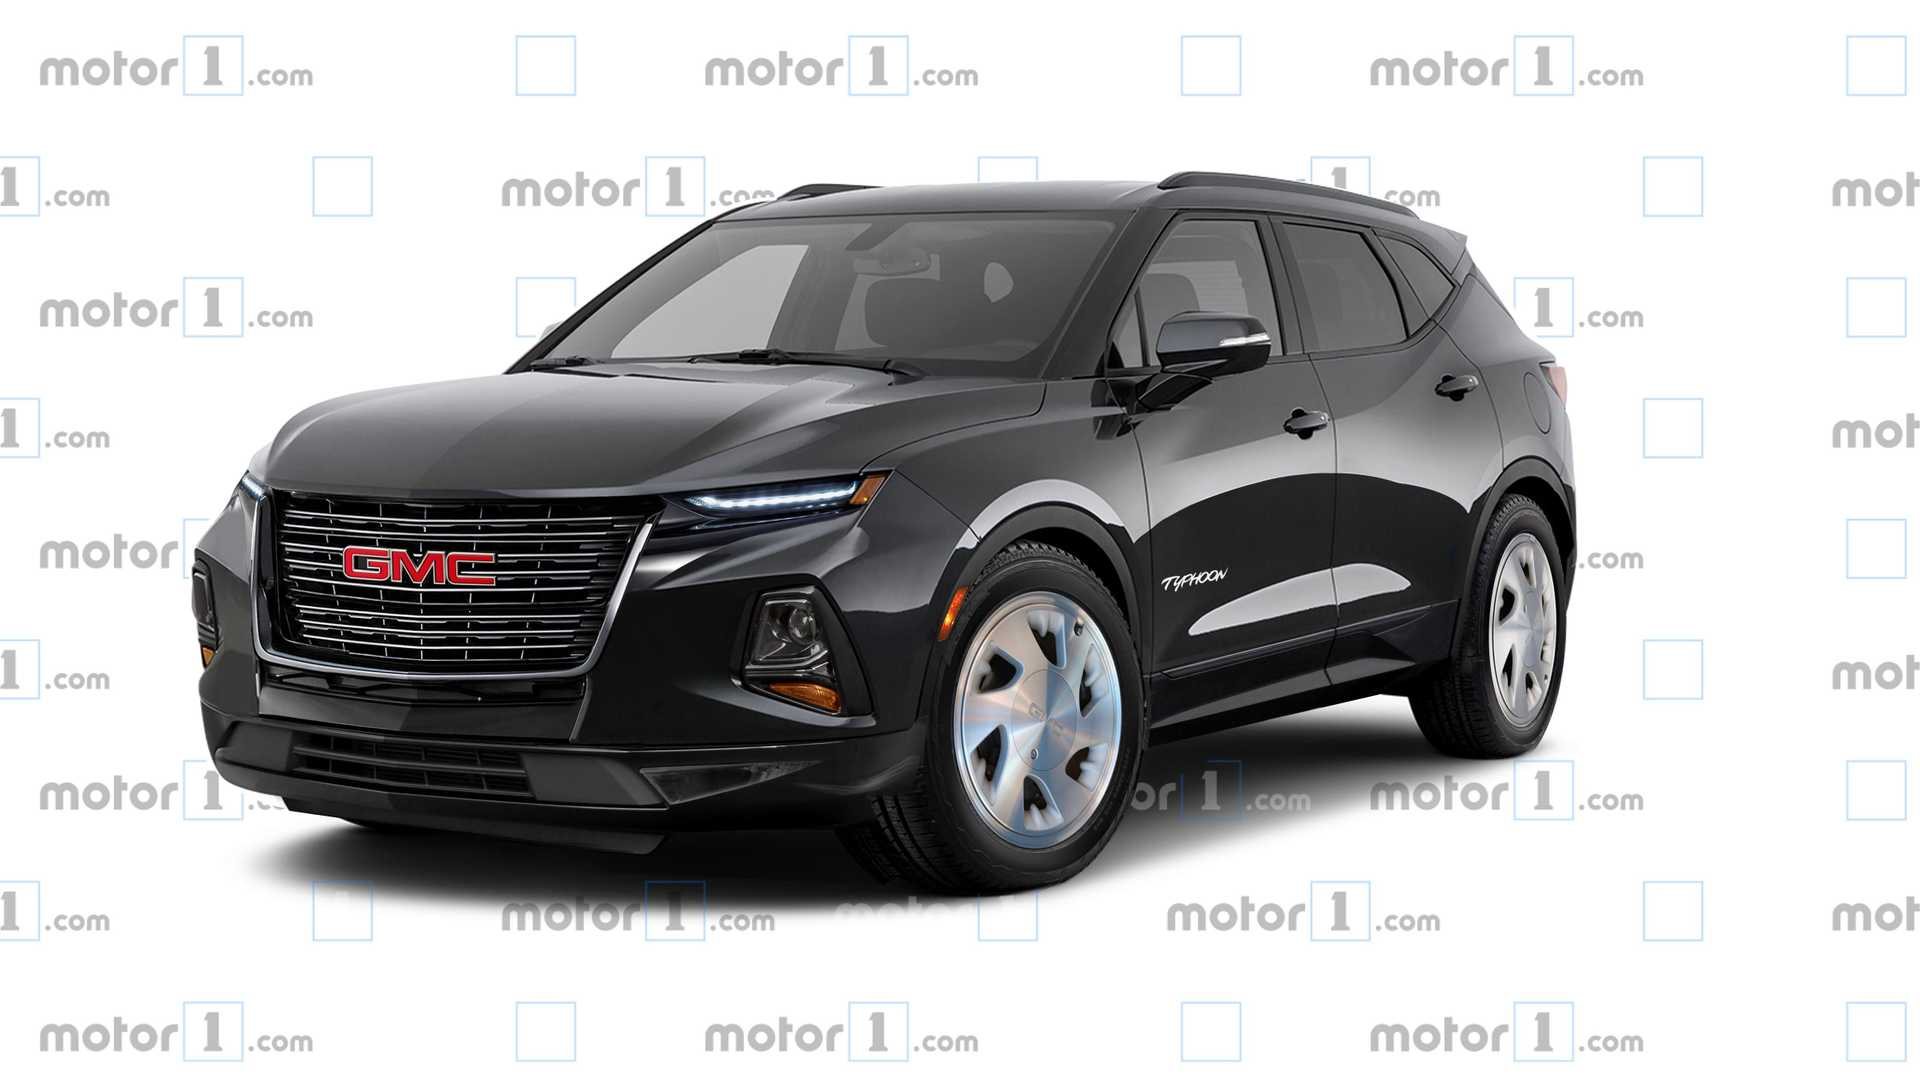 2021 Chevrolet Trailblazer Debuts As GM's Newest Compact ...